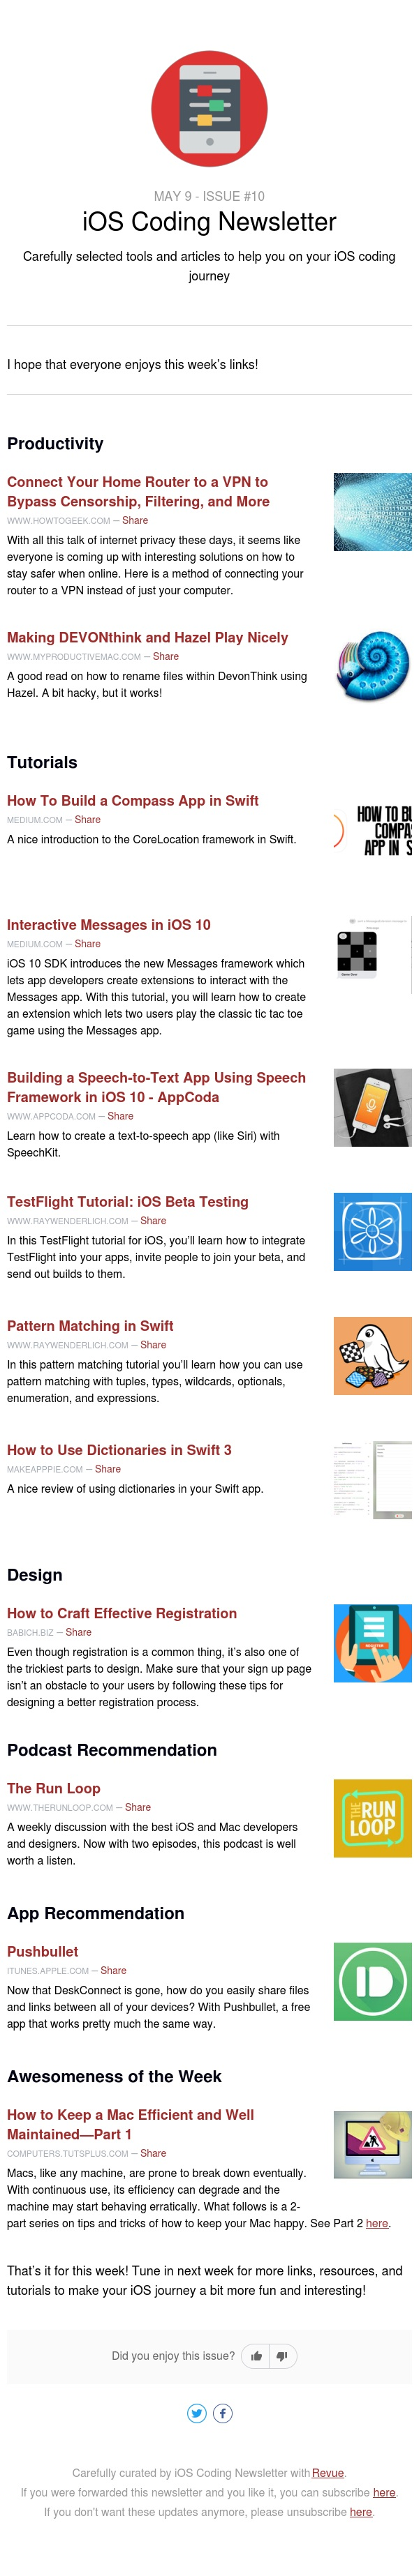 iOS Coding Newsletter - Issue #10